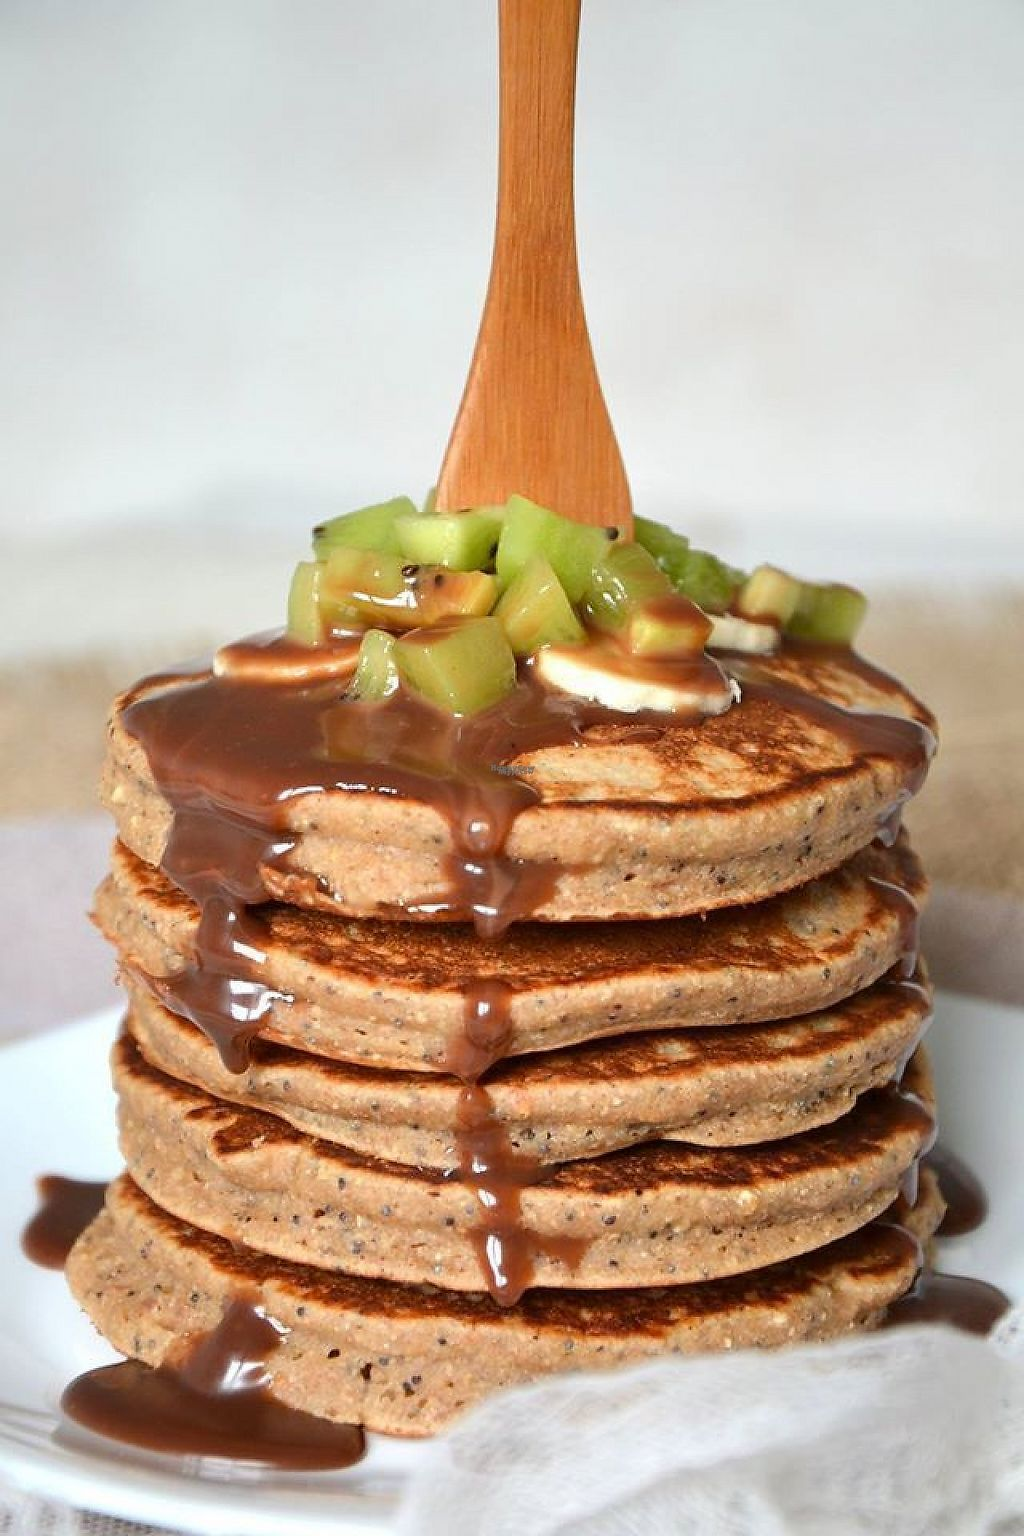 """Photo of La Vie Claire  by <a href=""""/members/profile/community"""">community</a> <br/>vegan pancakes  <br/> February 4, 2017  - <a href='/contact/abuse/image/72017/221862'>Report</a>"""